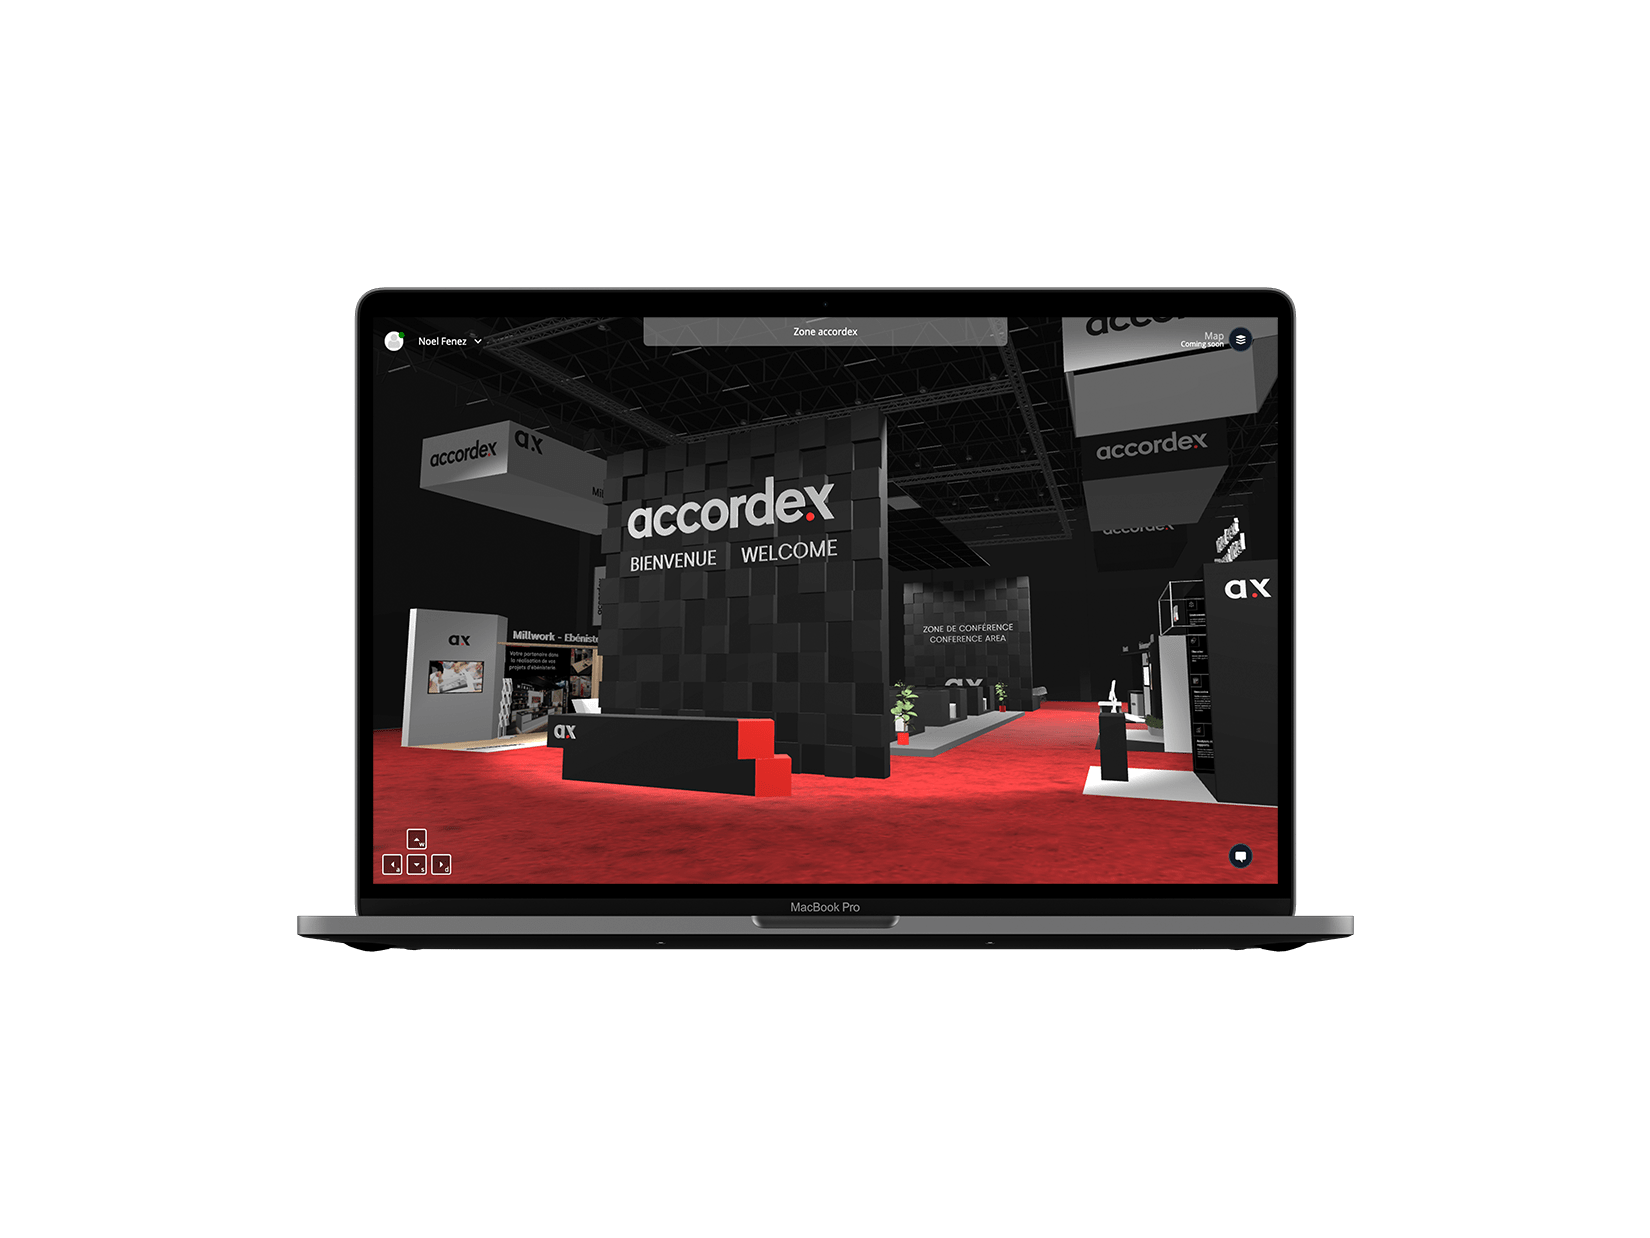 Laptop mockup showing virtual event application by accordex